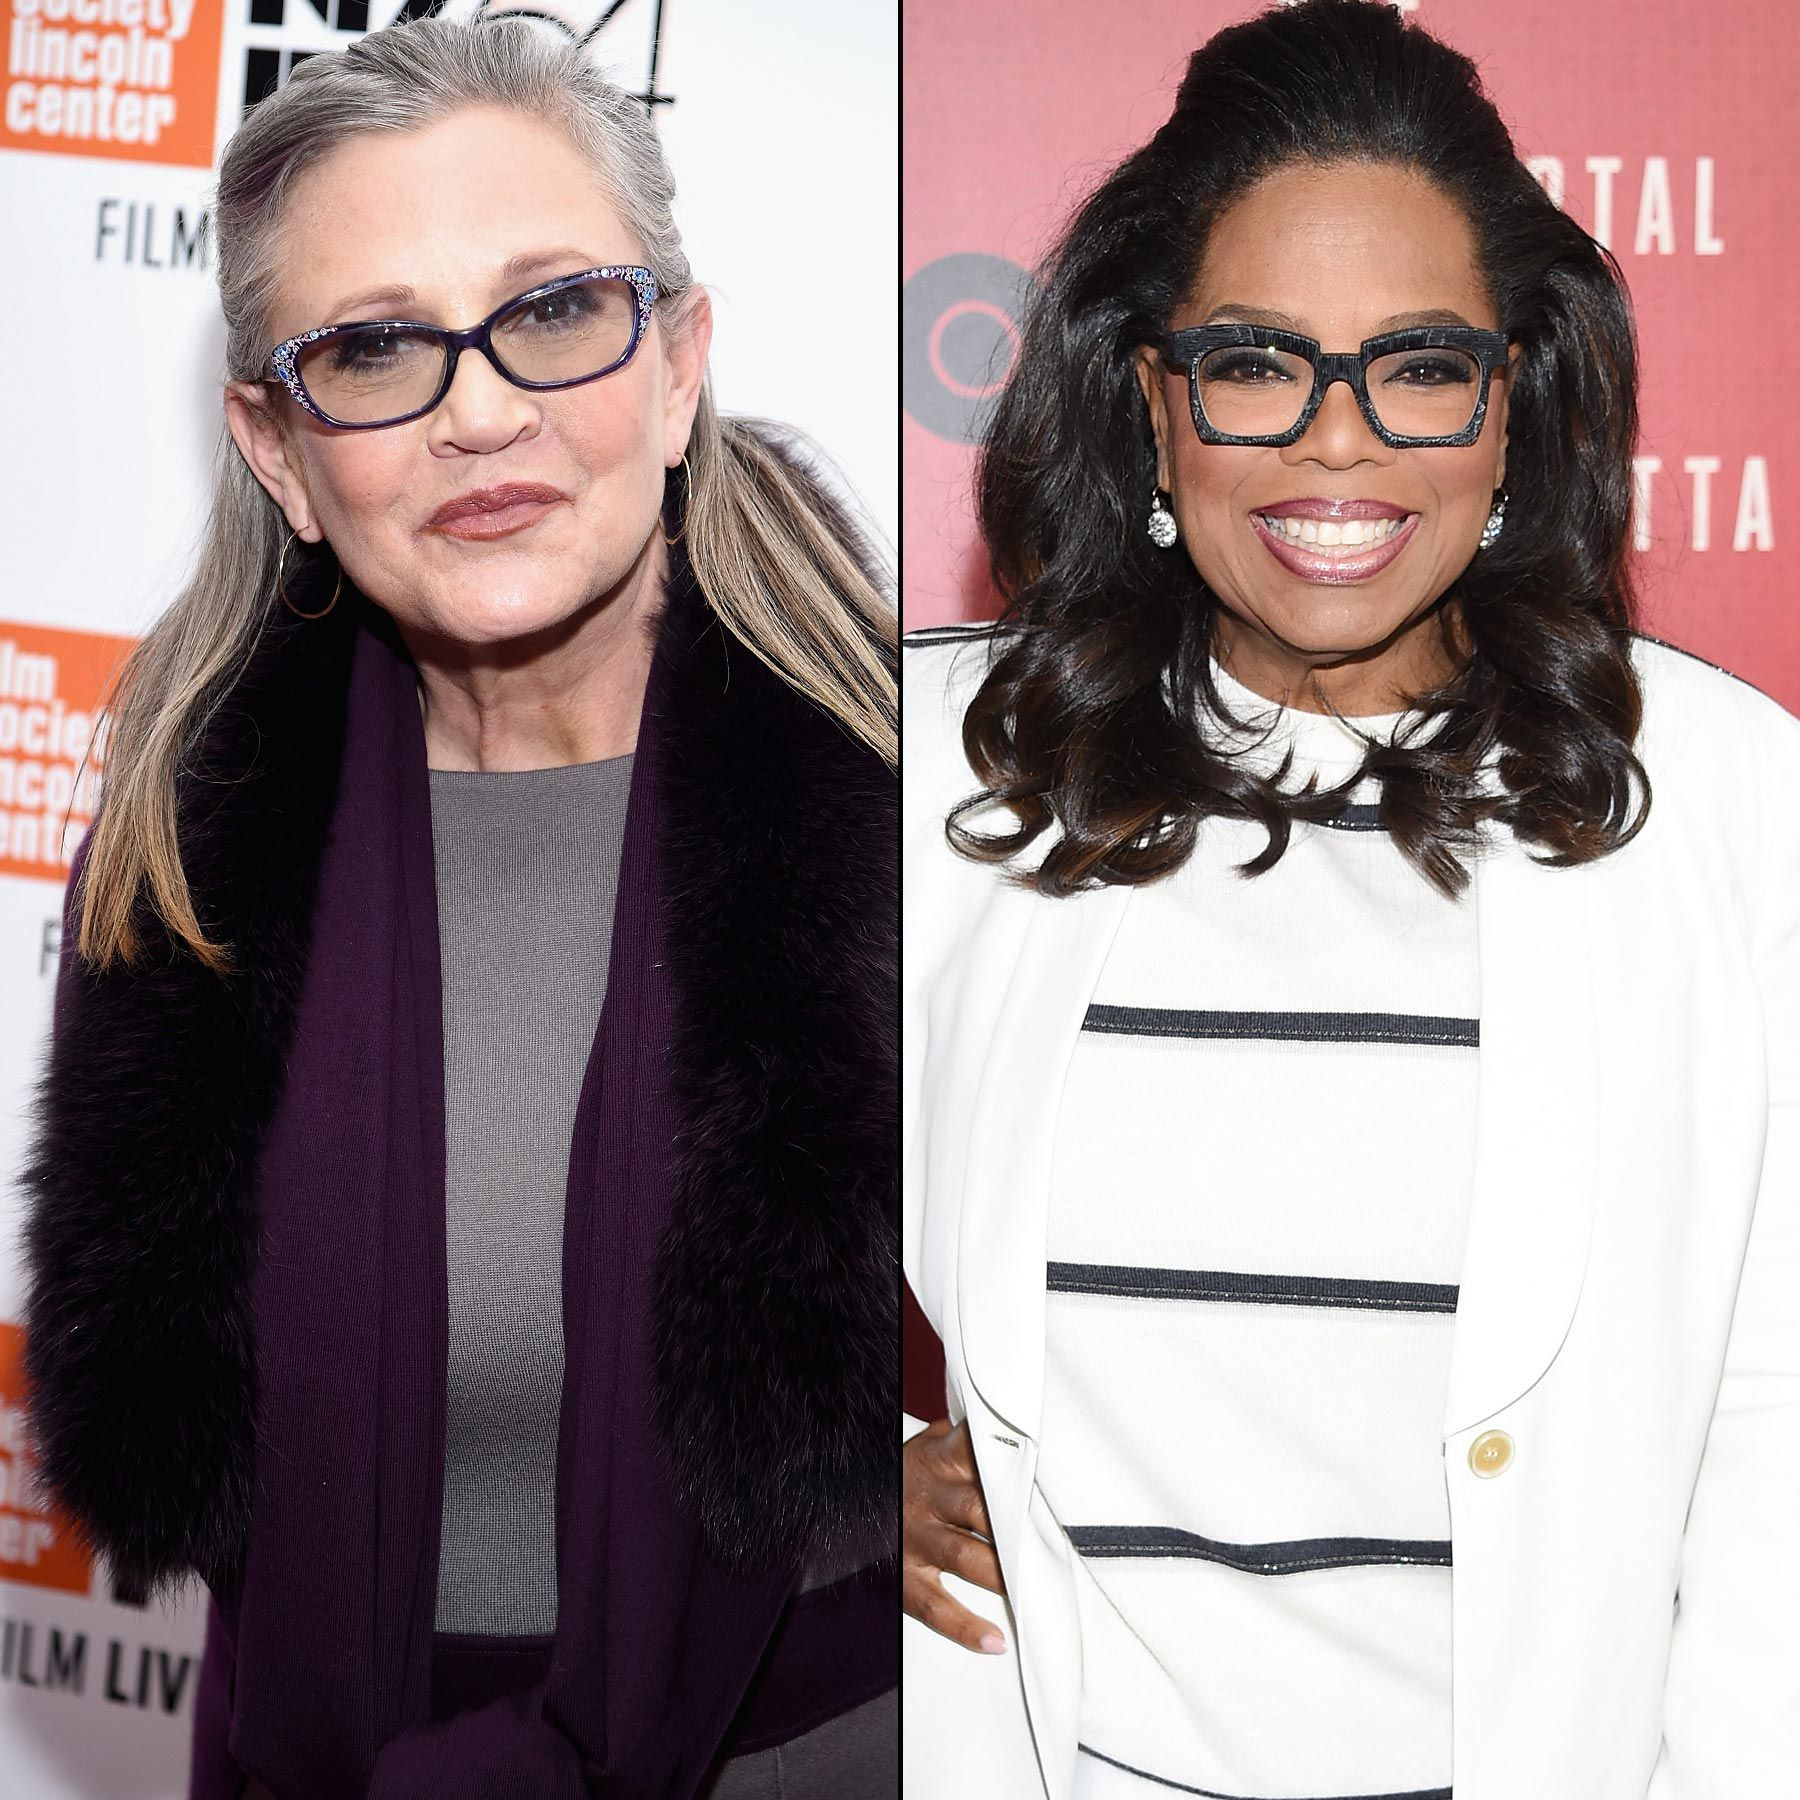 Carrie fisher oprah winfrey inducted as disney legends in